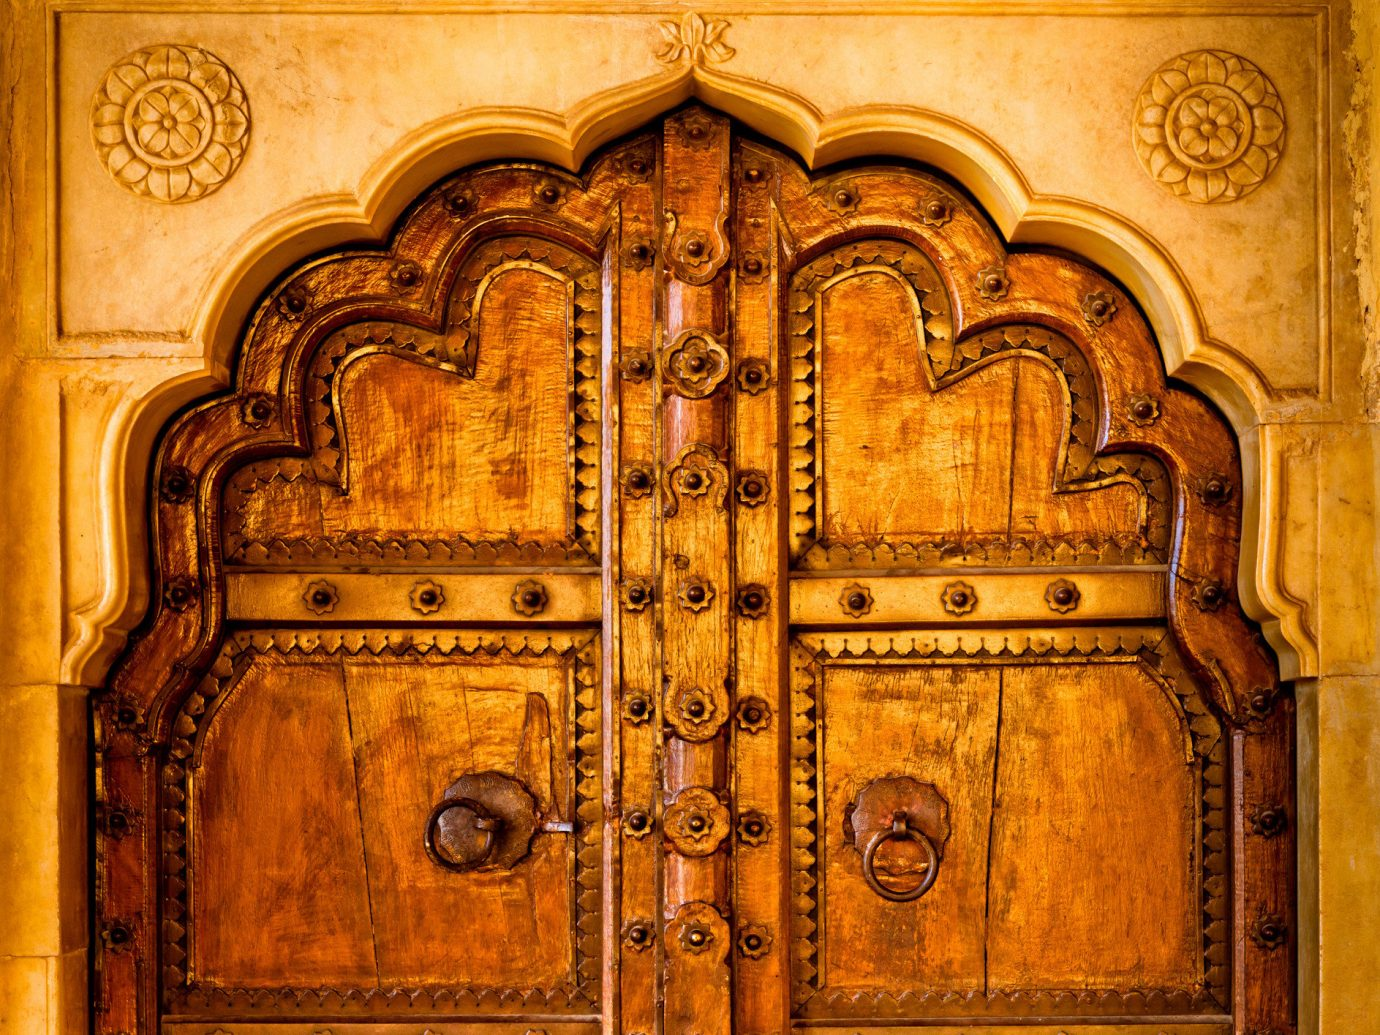 Offbeat indoor ancient history carving door art wood furniture middle ages arch interior design altar cathedral antique synagogue wardrobe